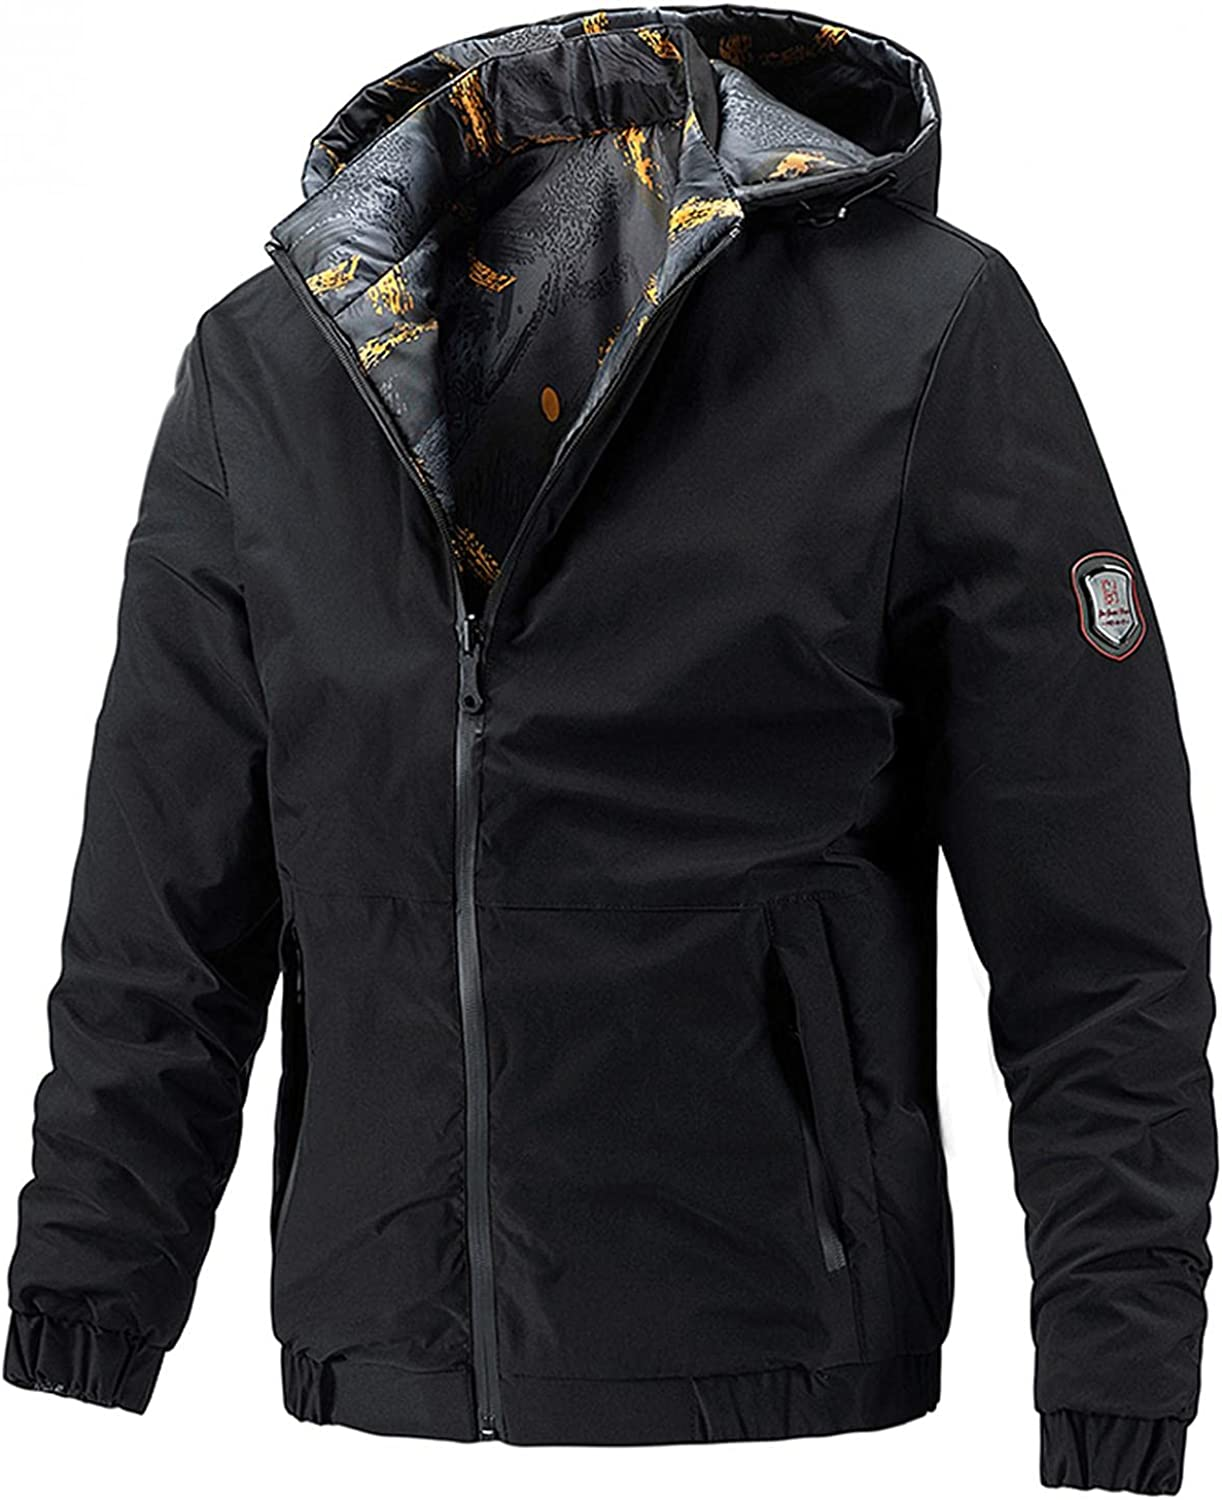 VEKDONE Men's Jackets Waterproof Ski Warm Snow Hooded Raincoat Casual Autumn and Winter Wear On Both Sides Pockets